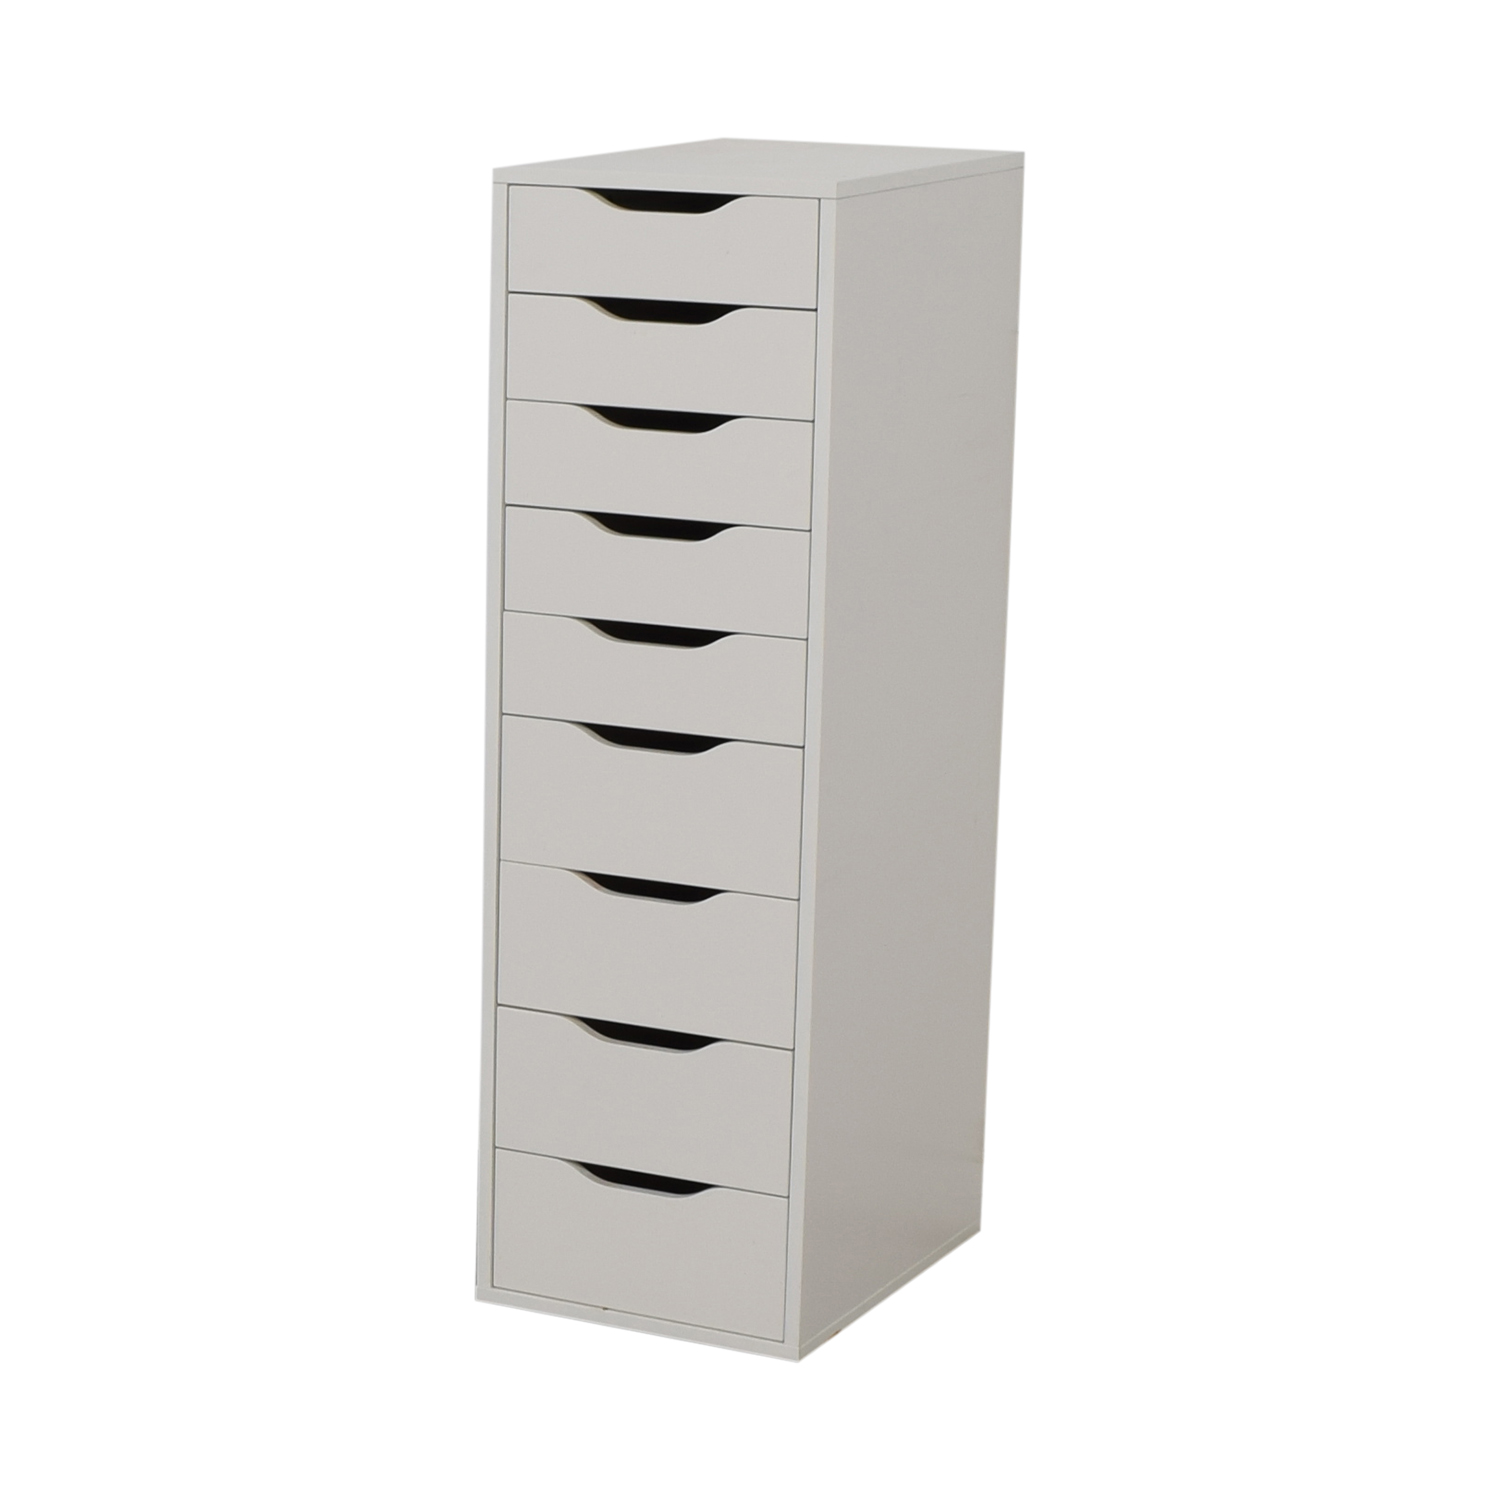 80% OFF - IKEA IKEA White Nine-Drawer Tall File Cabinet / Storage